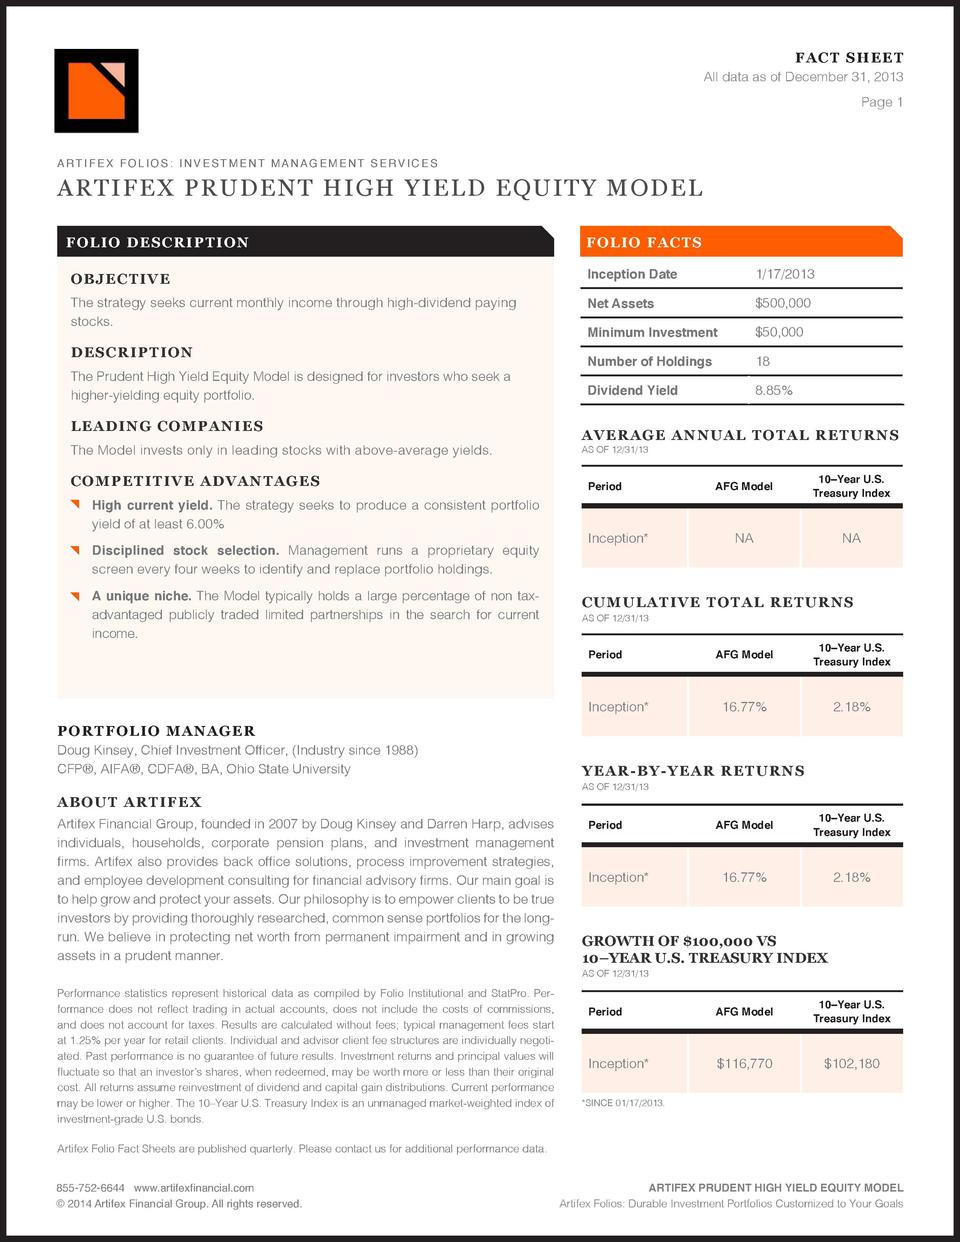 FAC T SHEET All data as of December 31, 2013 Page 1  ARTIFEX PRUDENT HIGH YIELD EQUITY MODEL FOLI O D ES CRI PT IO N  F OL...